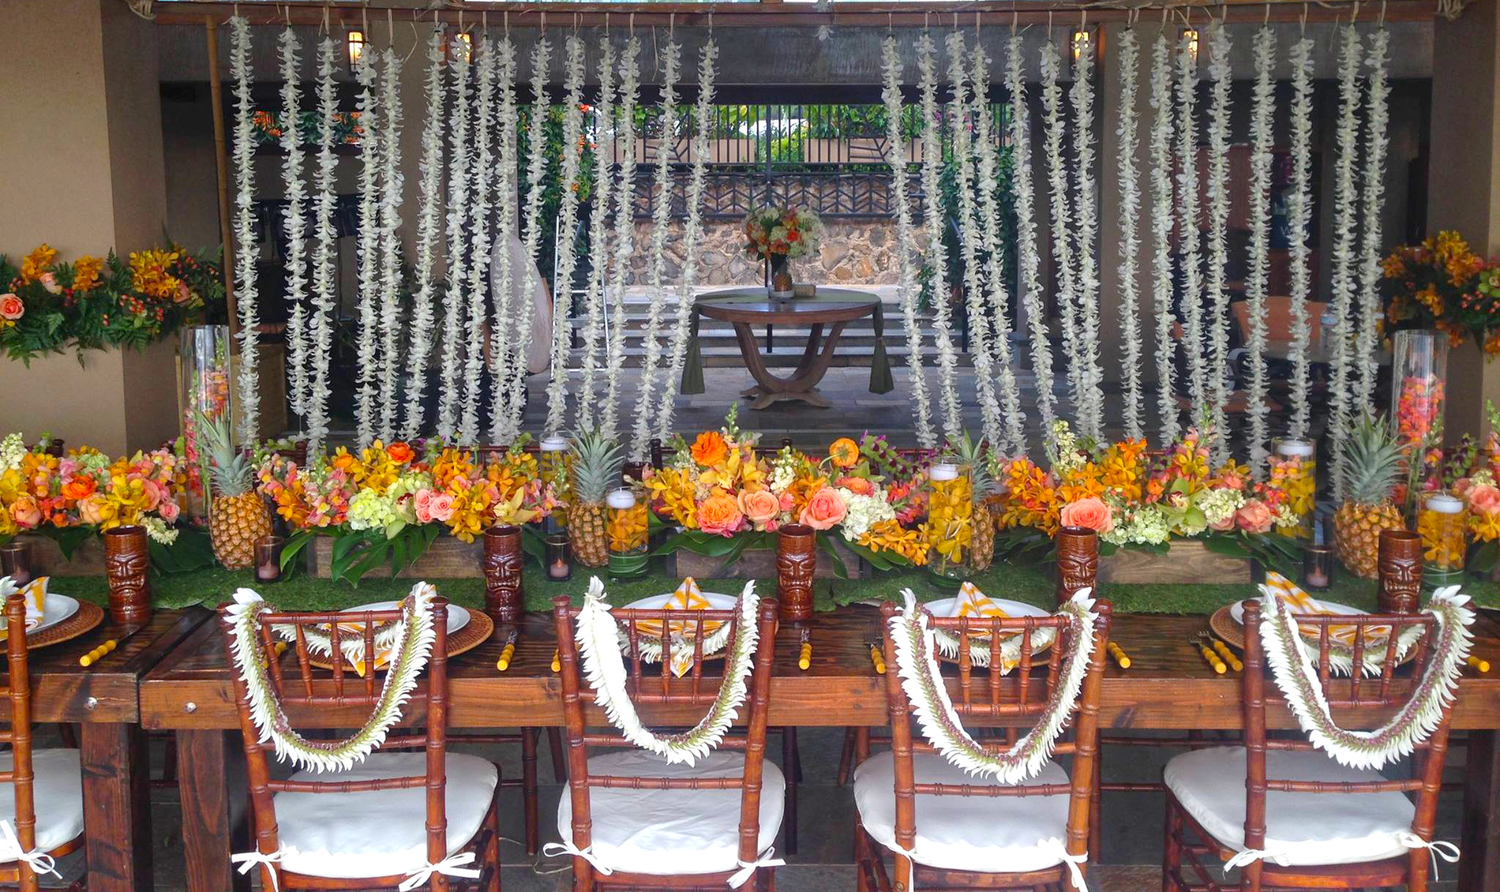 dellables-florist-and-floral-arrangement-for-weddings-in-maui-hawaii 2.jpg